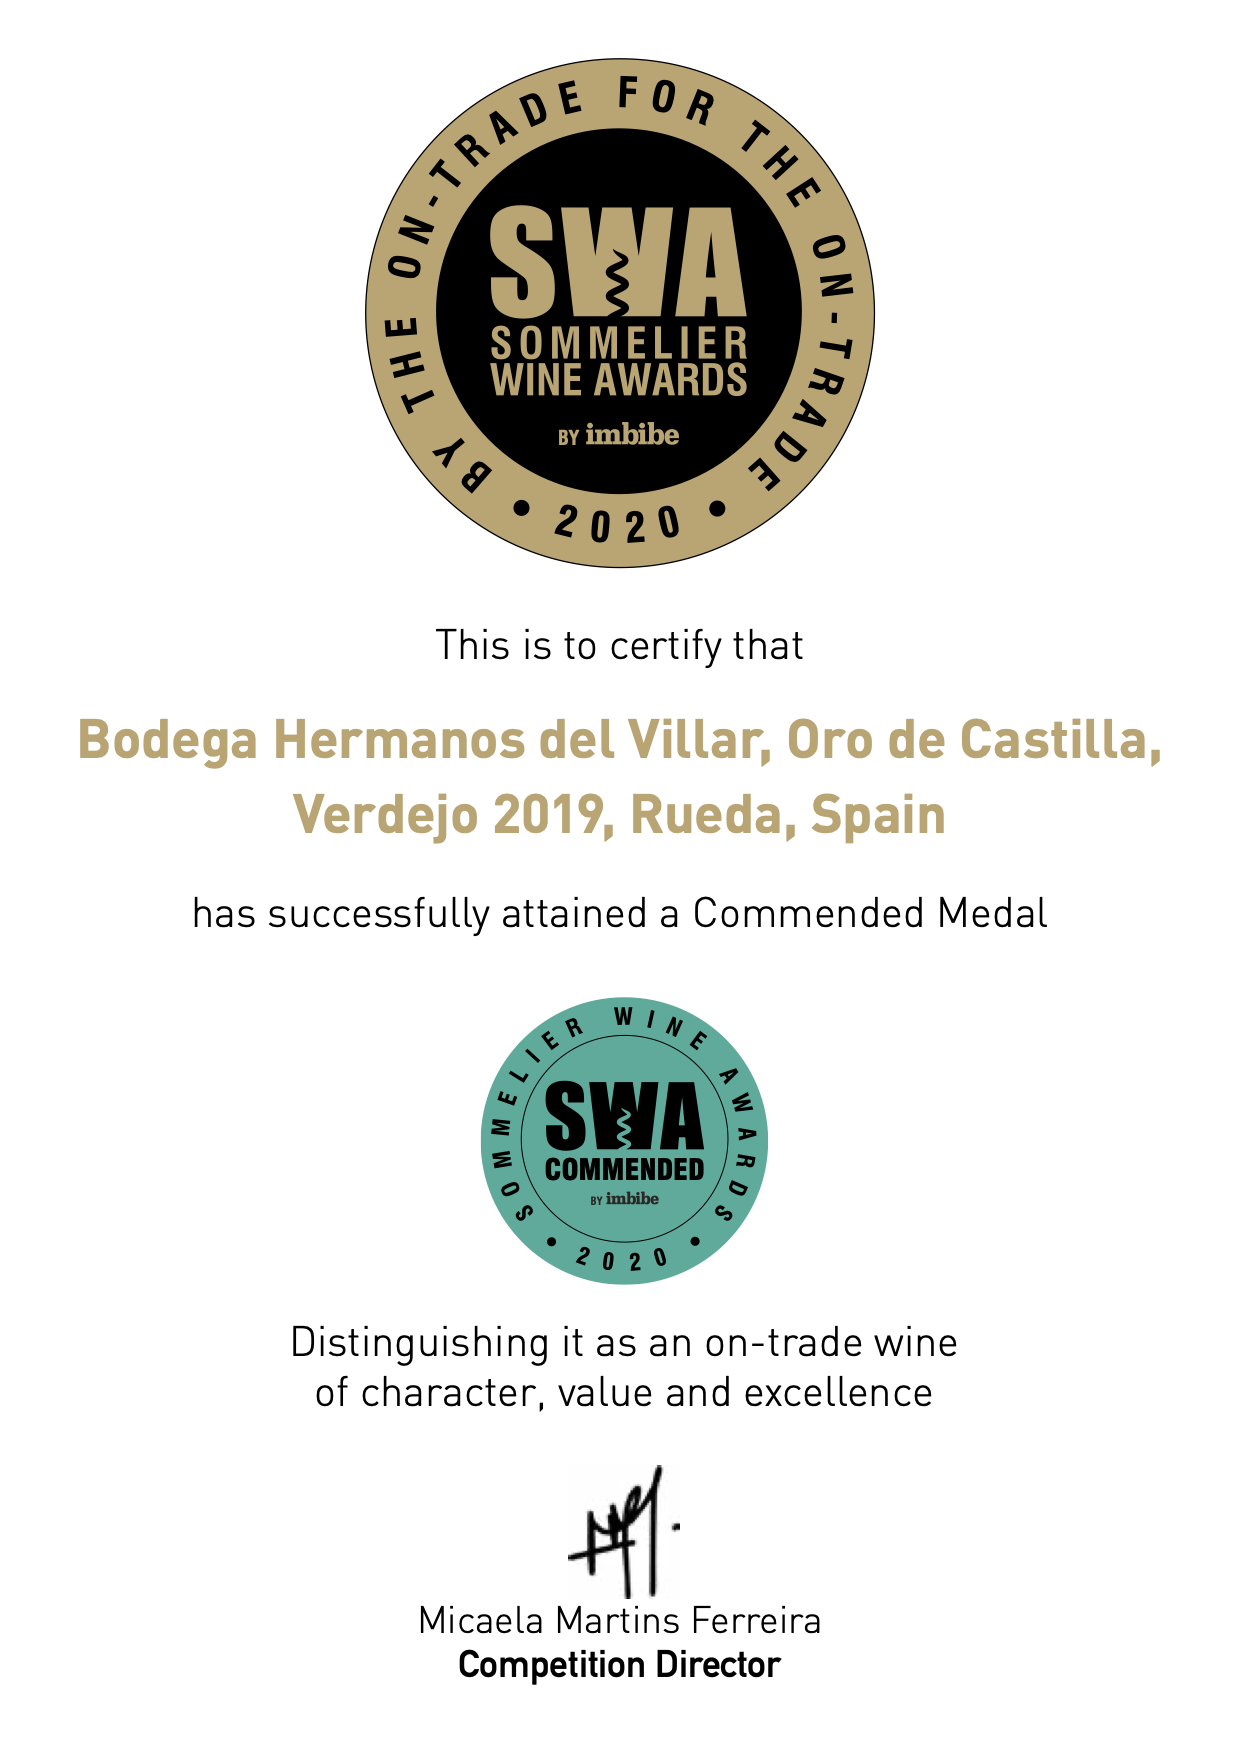 verdejo-sommelier-wine-awards-2020